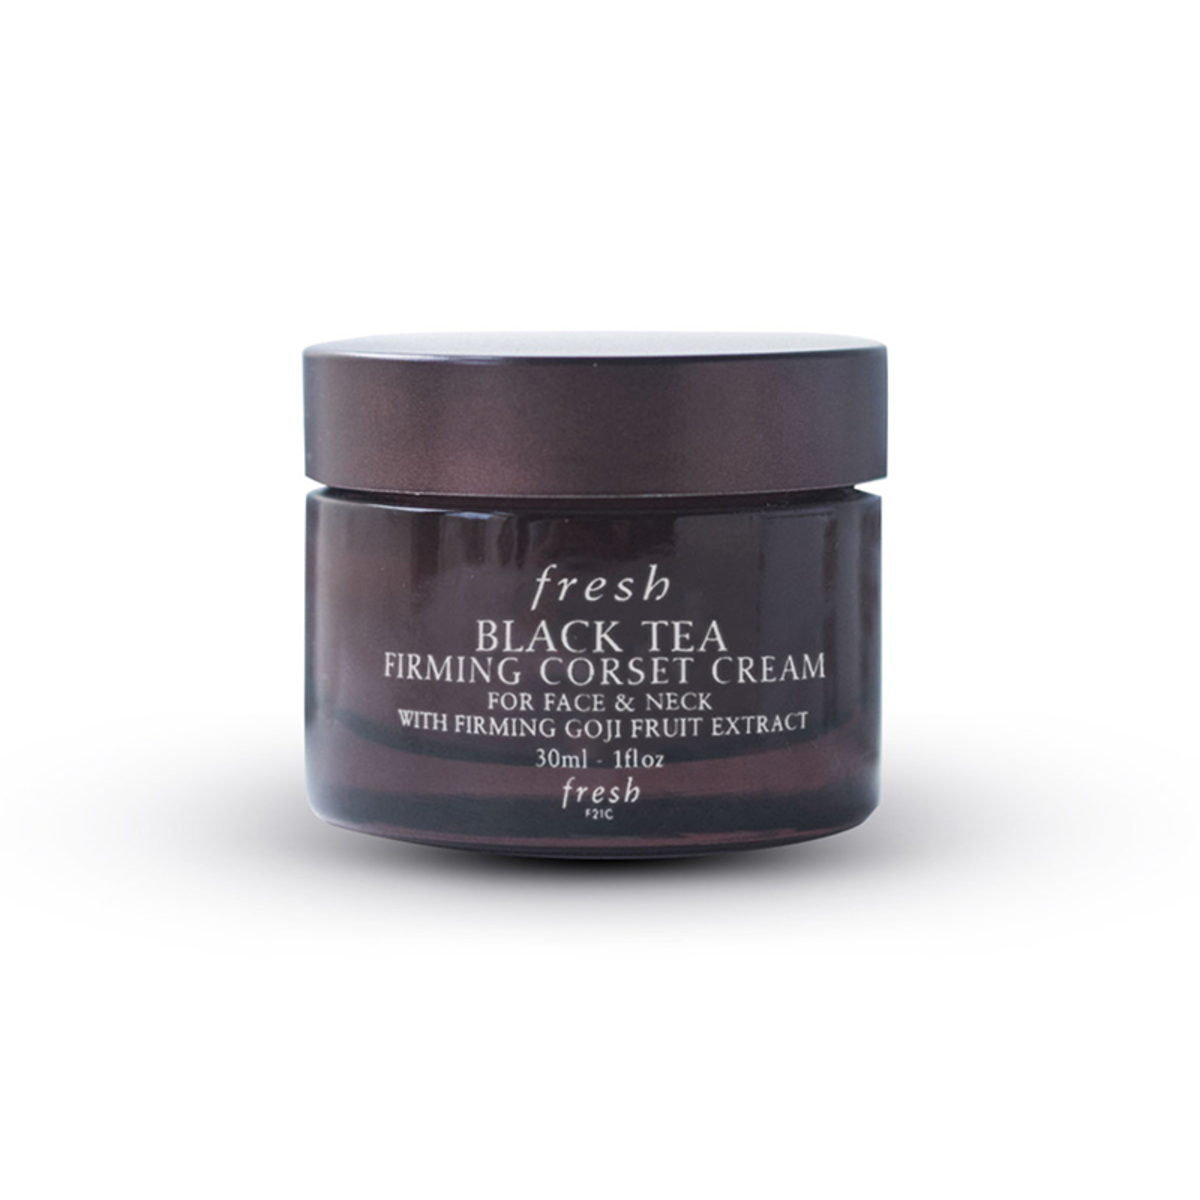 f306daeac81 Black Tea Firming Corset Cream 30ml